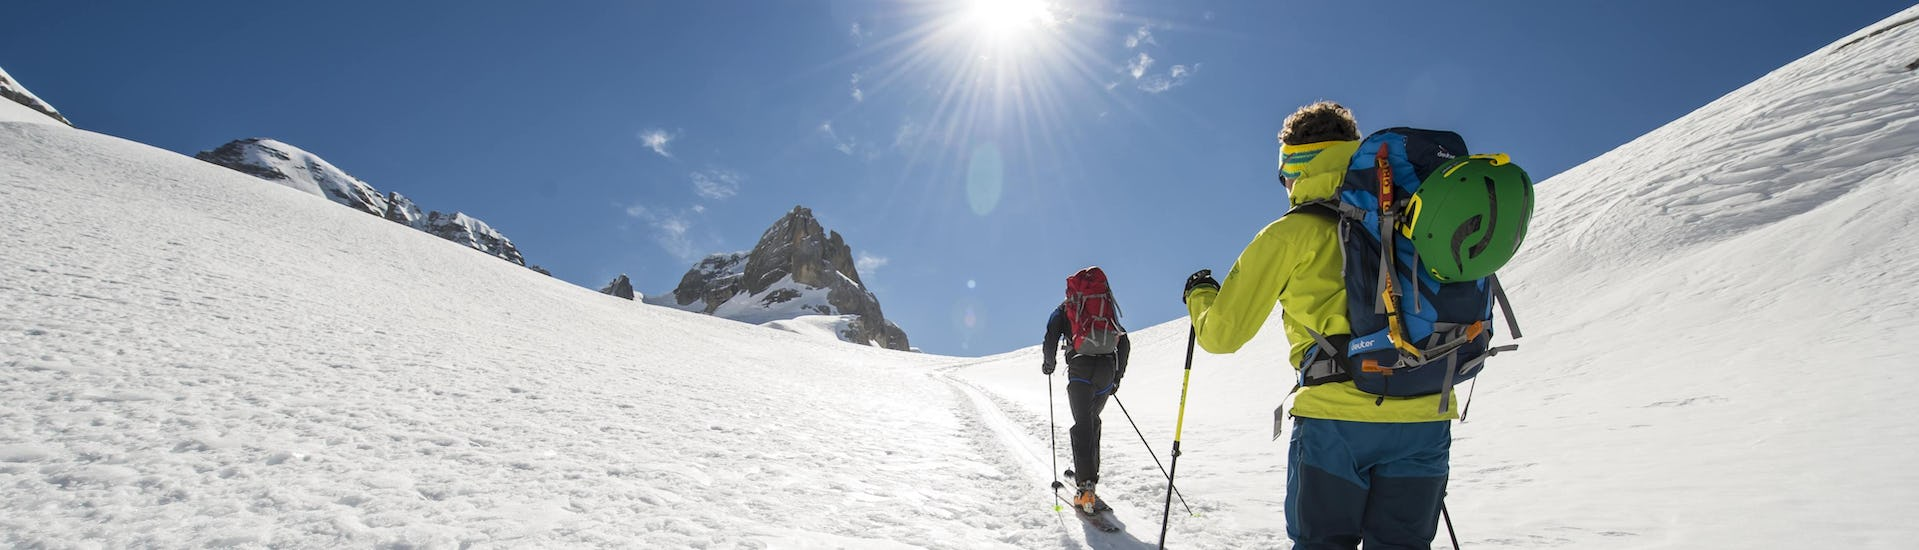 A ski touring guide is guiding another skier to the mountain summit while on a ski tour in the ski resort of Breuil-Cervinia.